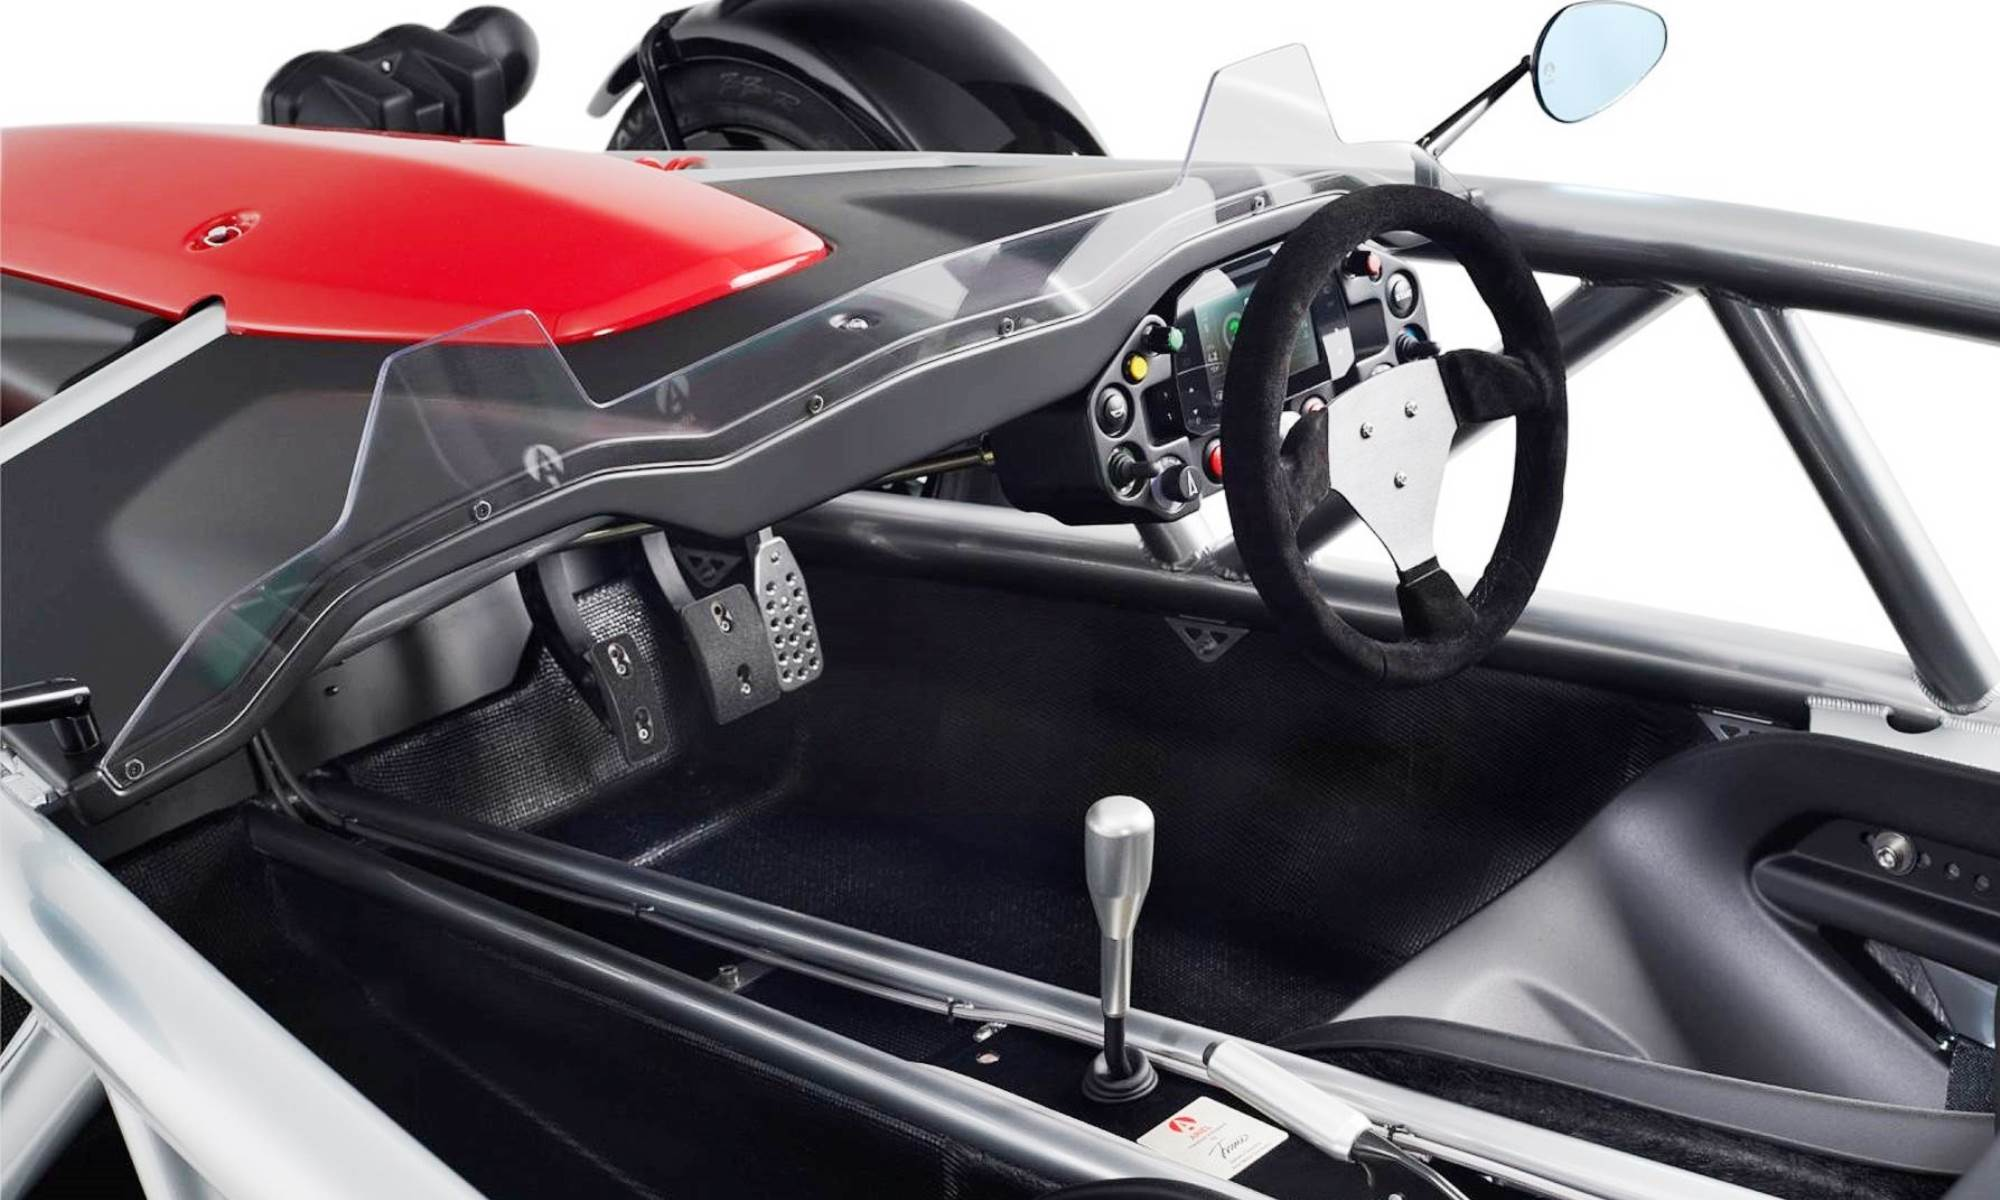 The Ariel Atom interior is sparse by any measure